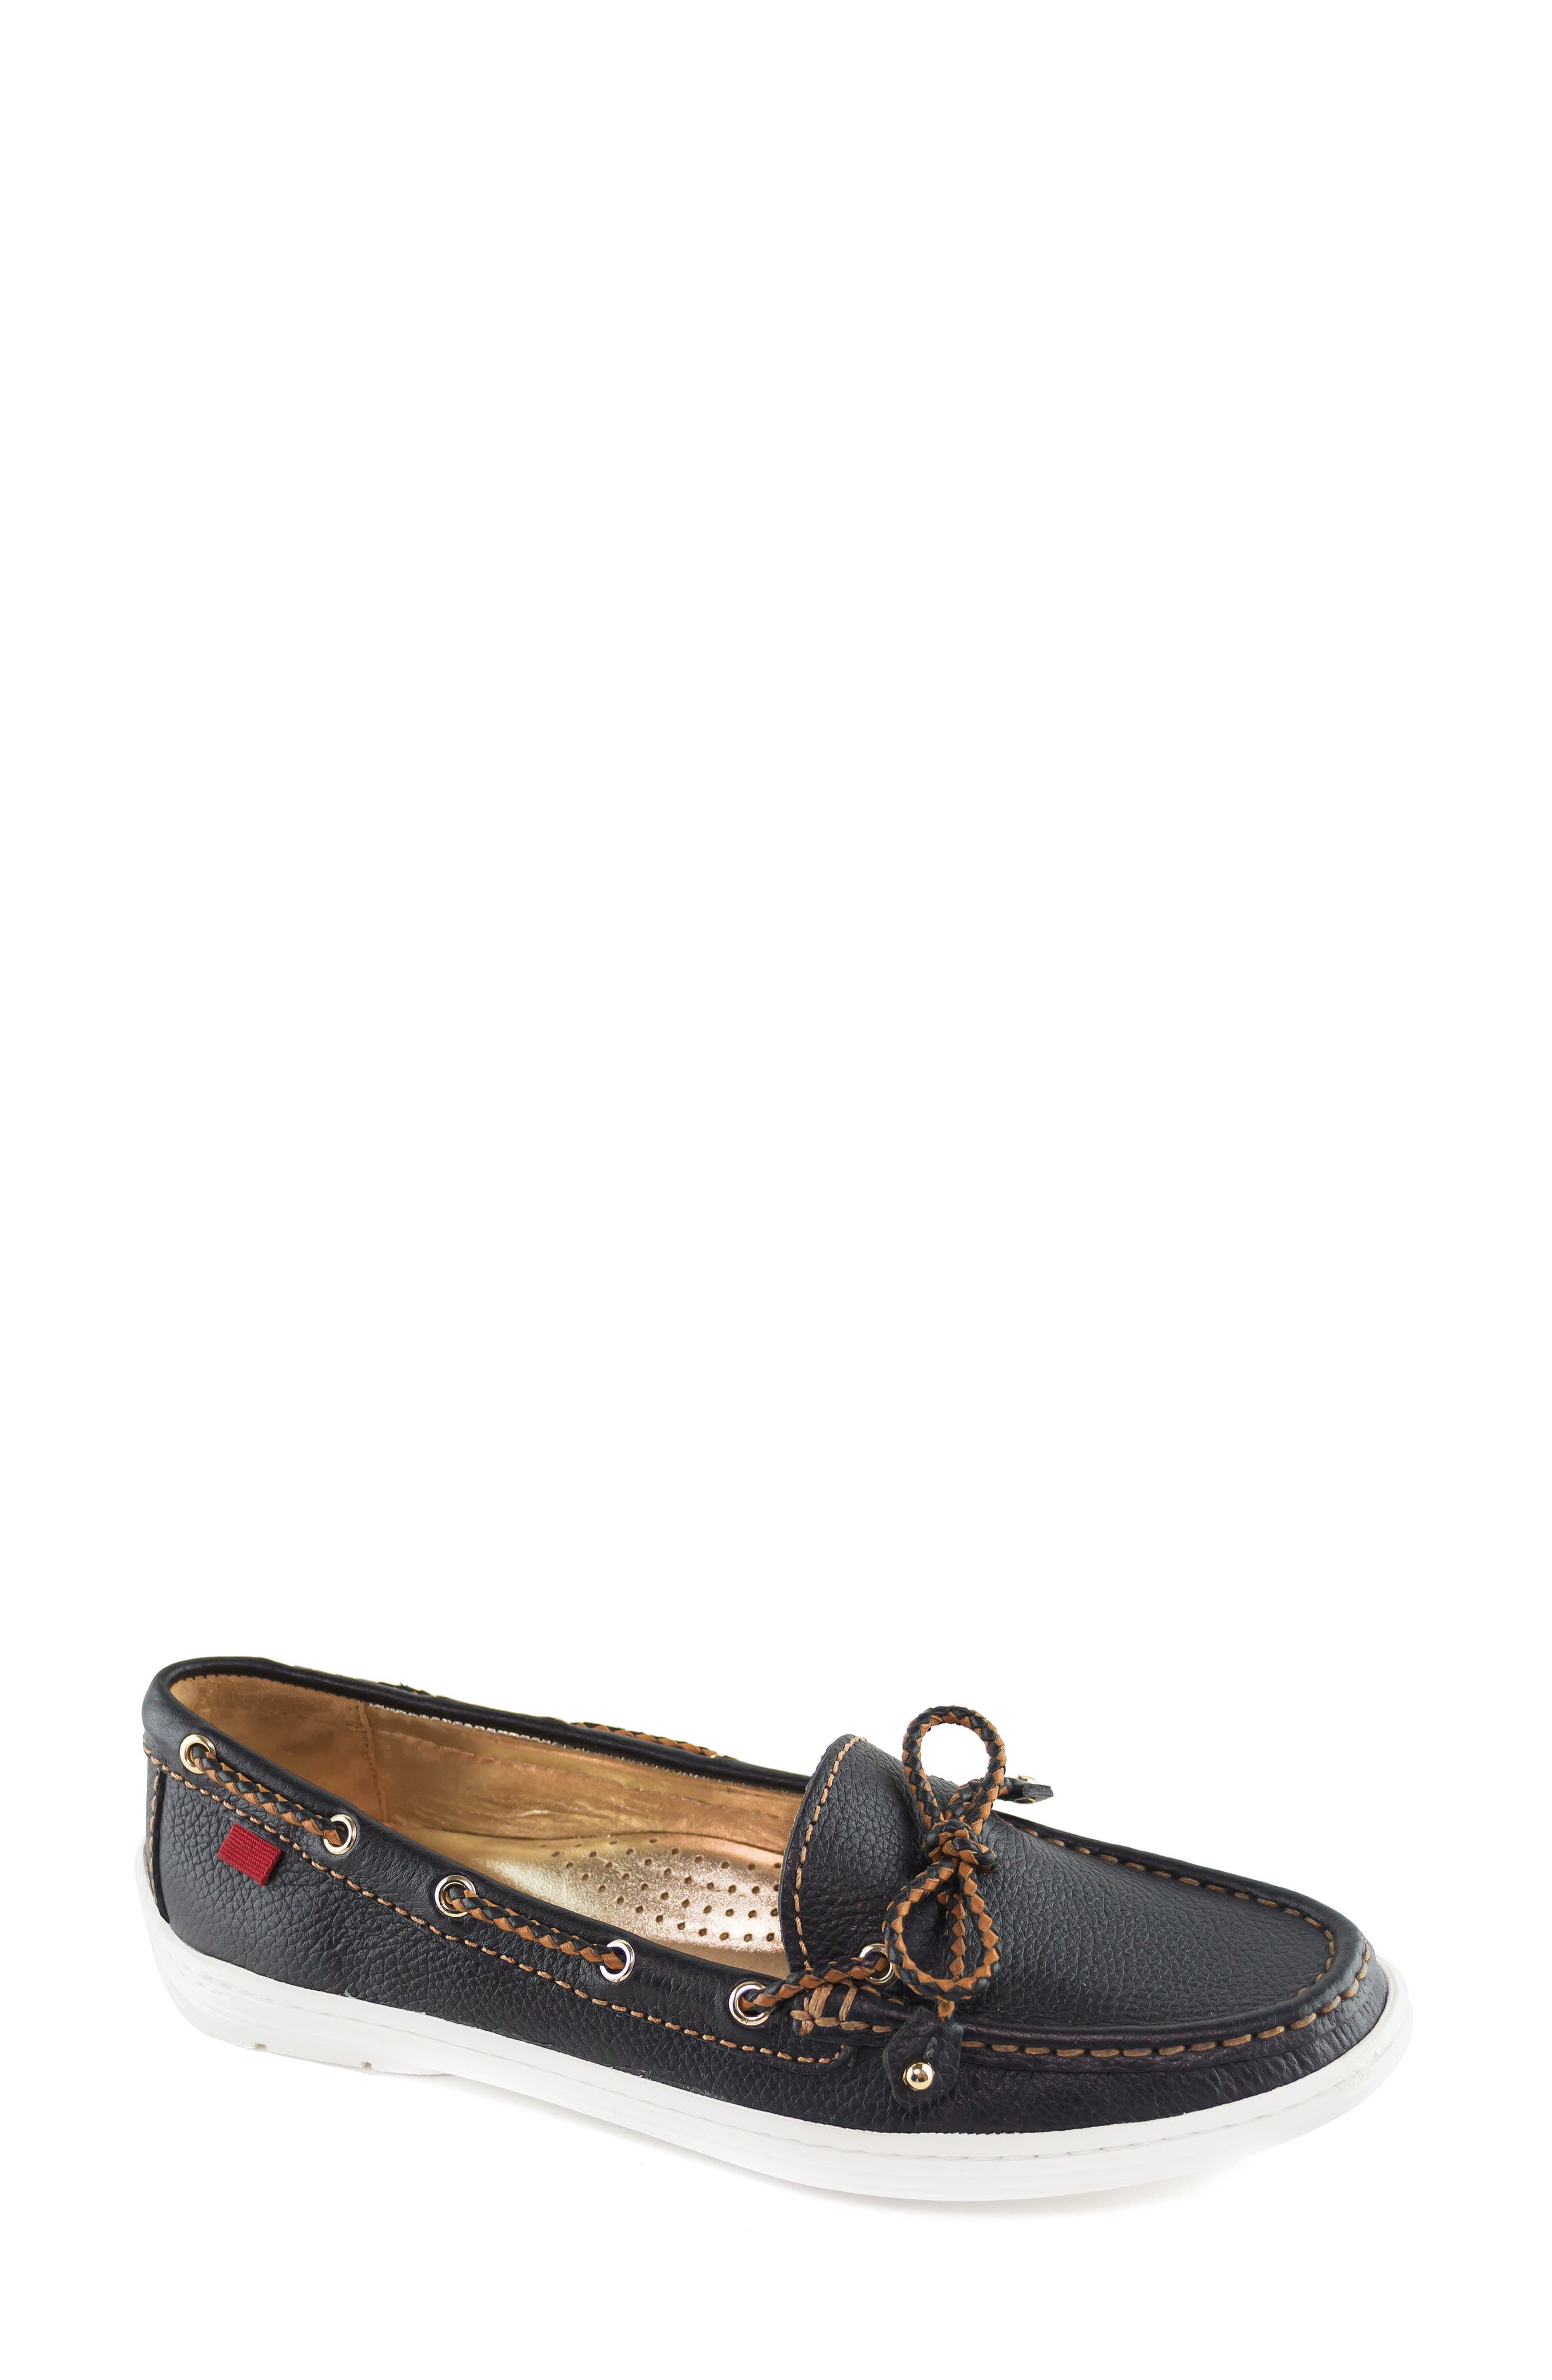 Pacific Loafer, Main, color, BLACK LEATHER